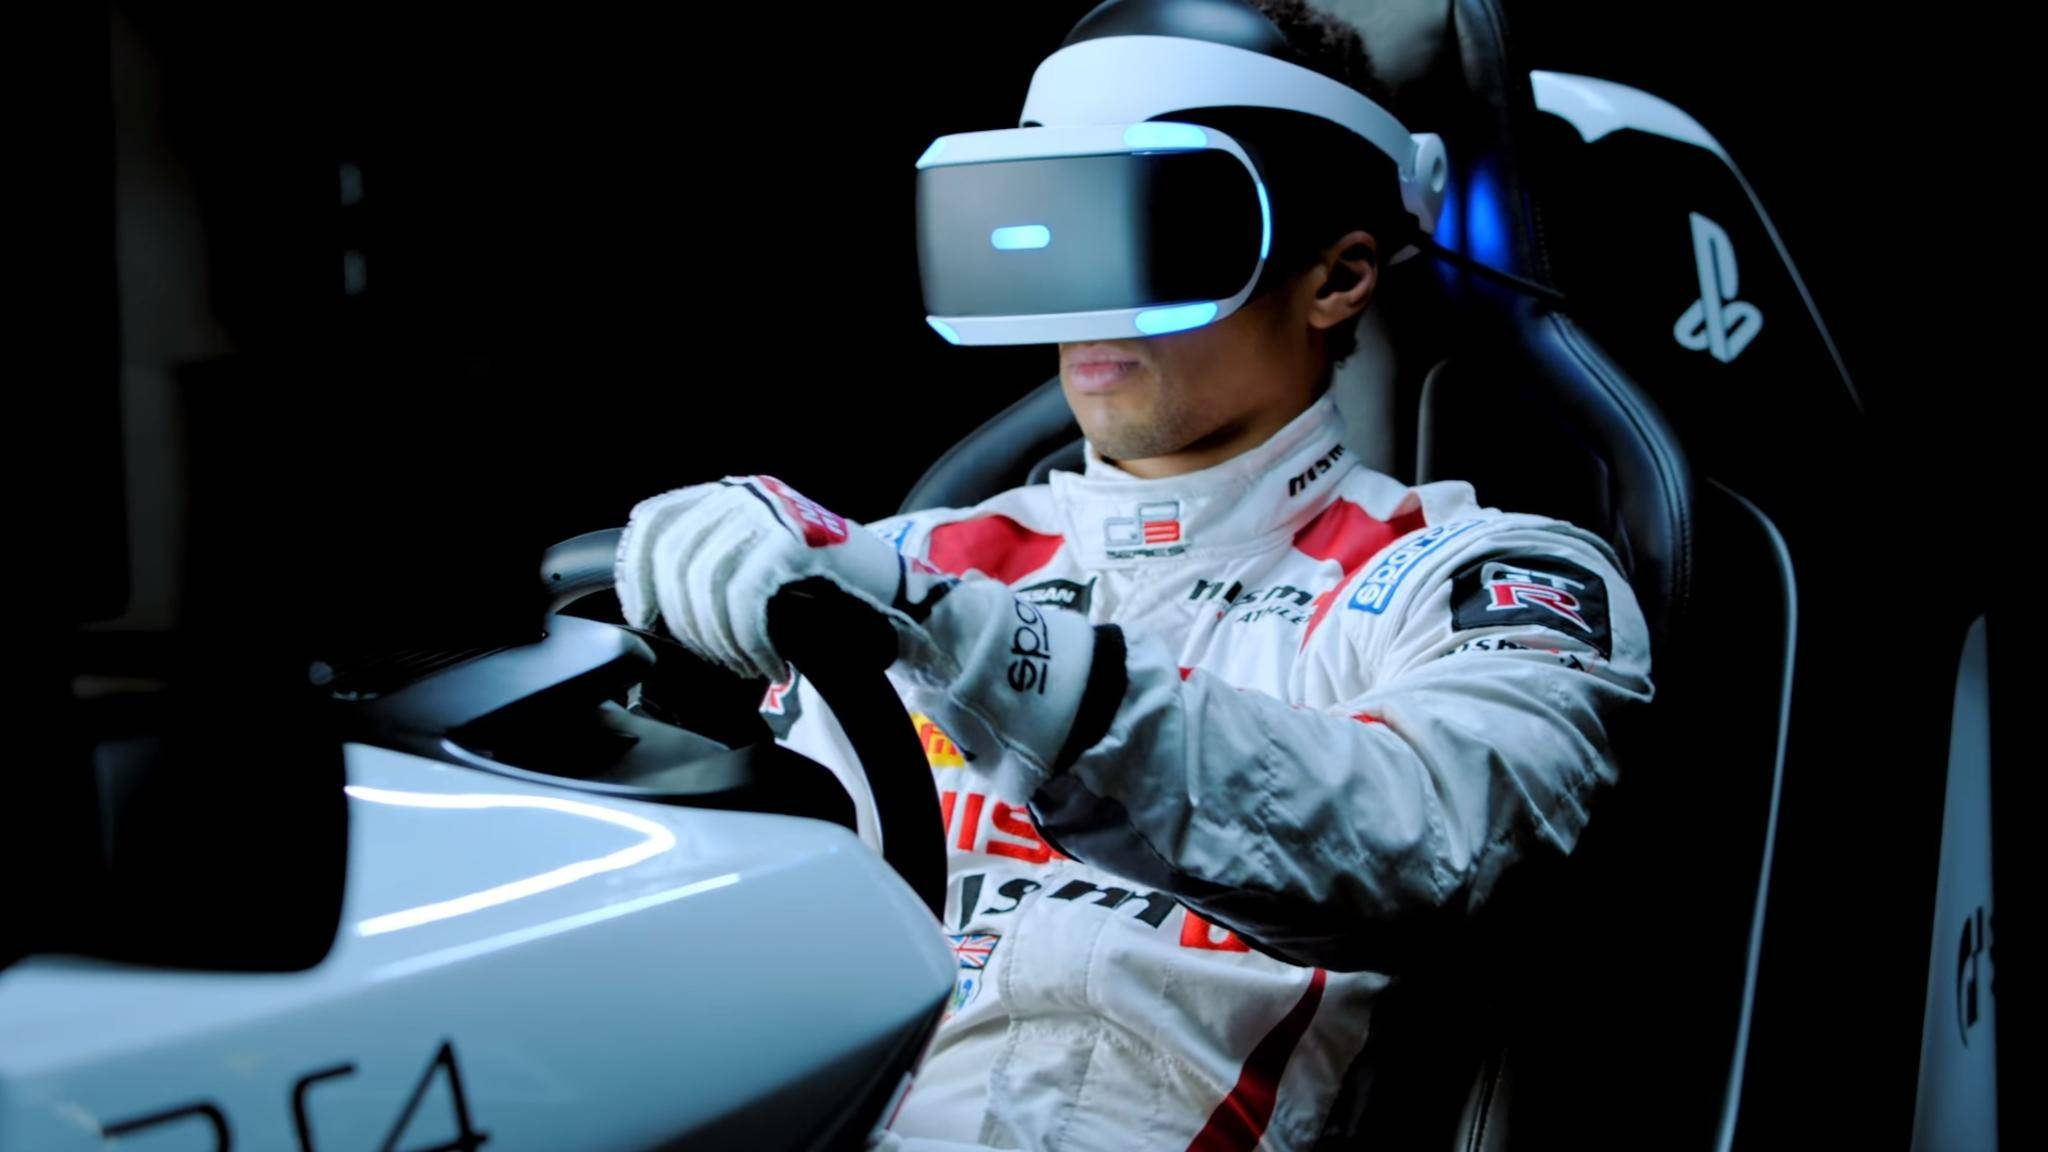 Virtual-Reality-Brillen wie PlayStation VR erobern die Gaming-Welt.